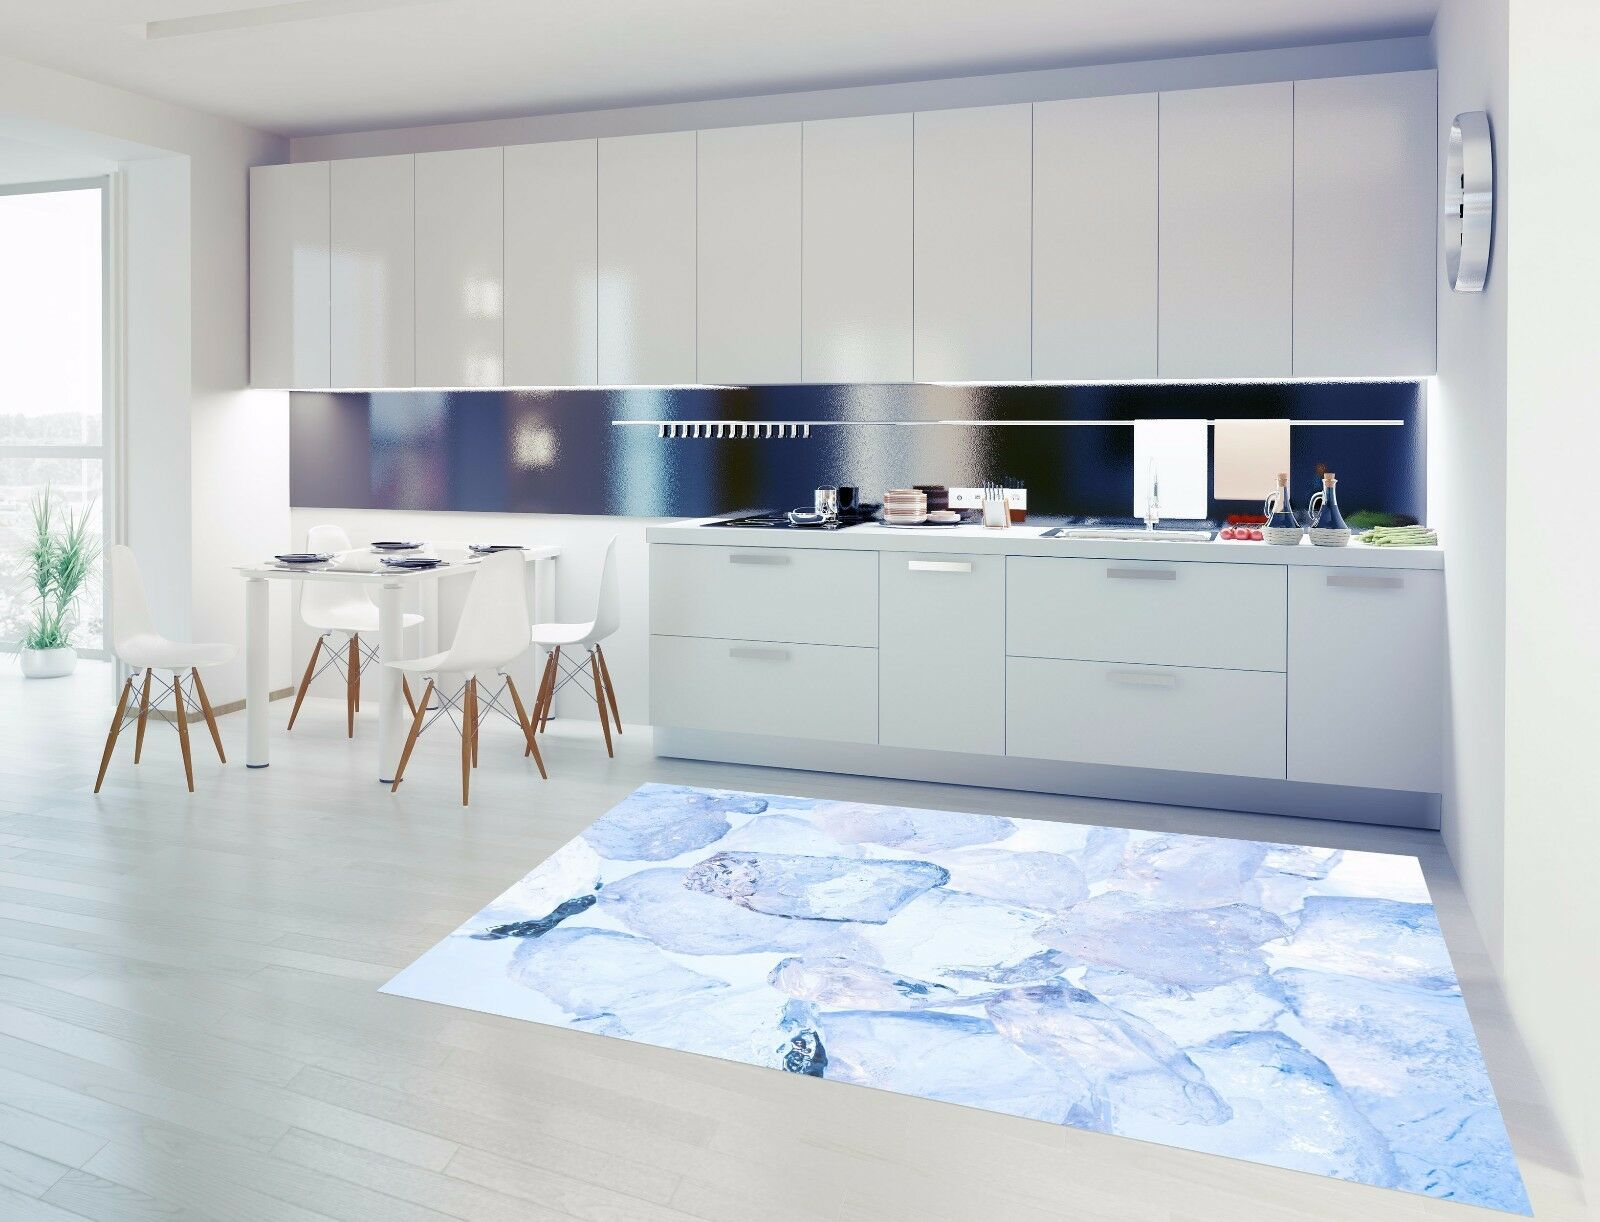 3D Blau Crystal 8 Kitchen Mat Floor Murals Wall Print Wall AJ WALLPAPER AU Carly